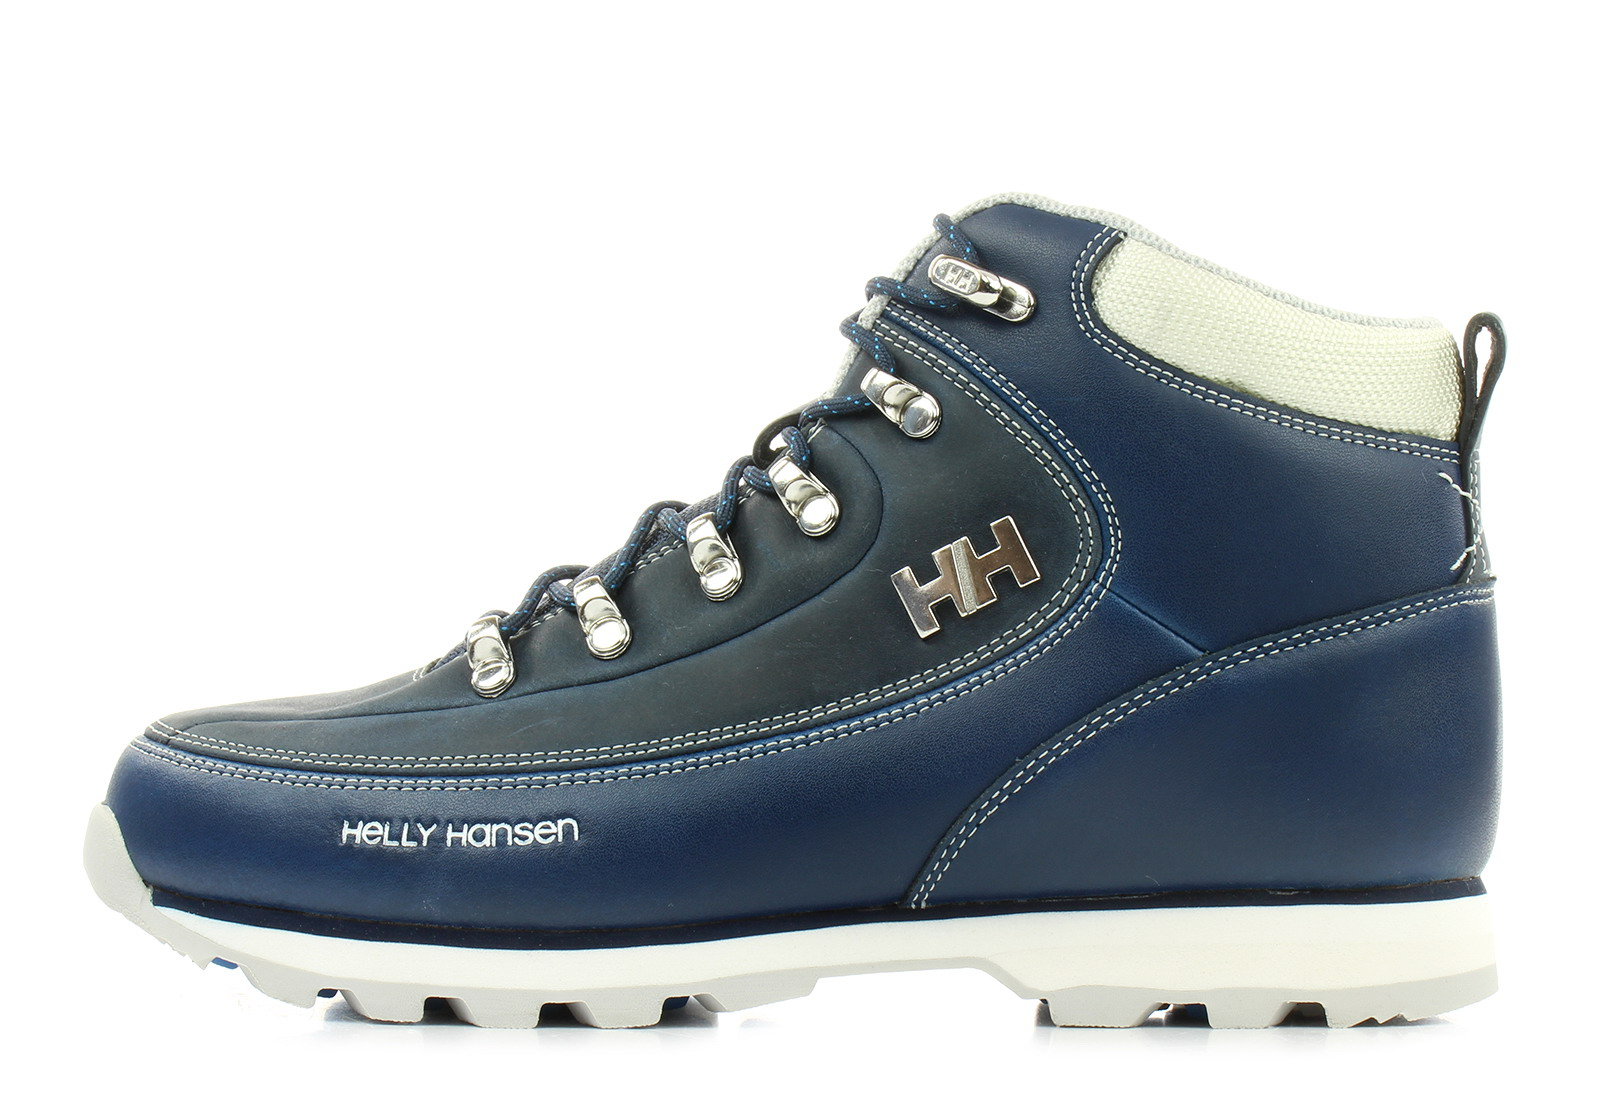 Helly Hansen Boots - W The Forester - 10516-292 - Online shop for ... 68ce35b5f4